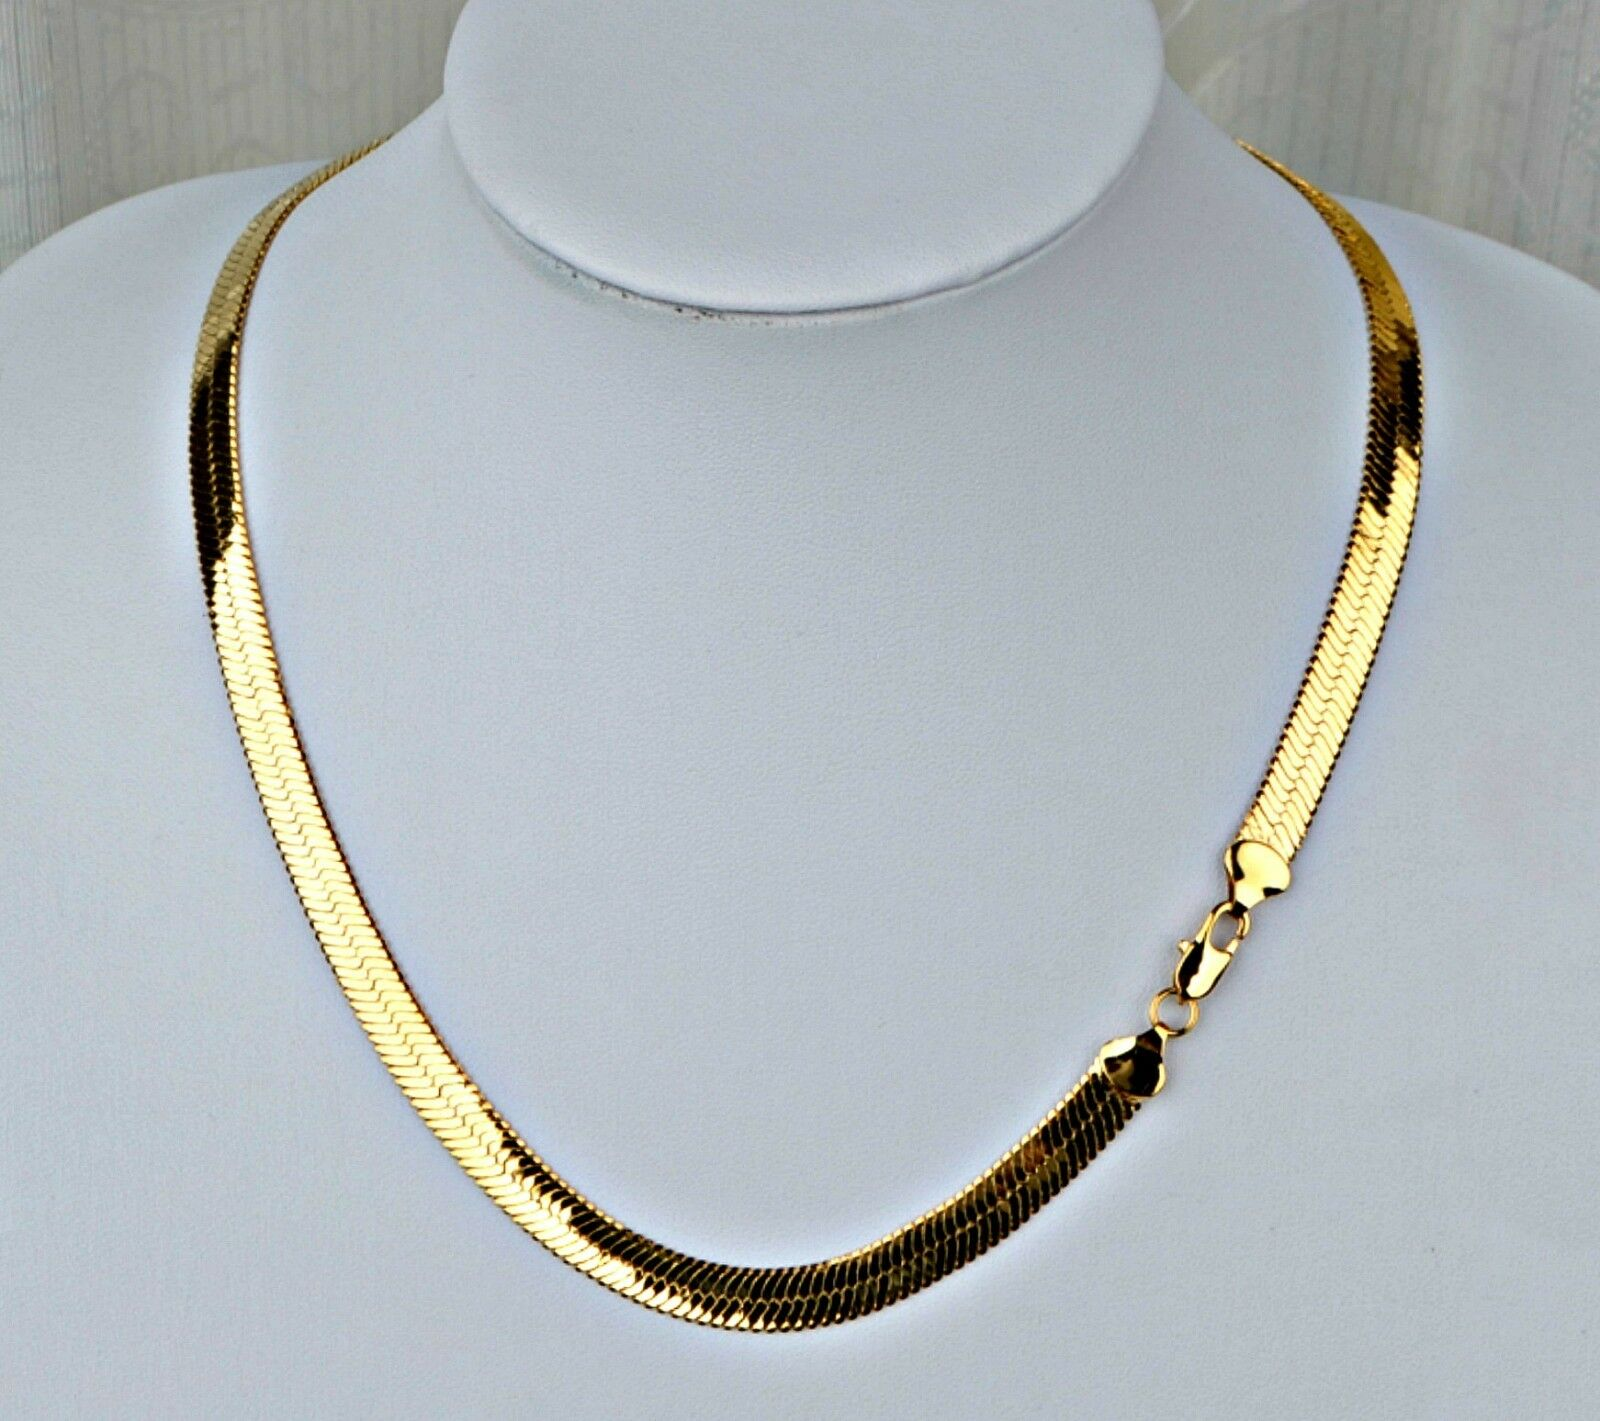 $15.47 - NEW PVD BONDED 18k GOLD Men's & Woman's 6½mm HERRINGBONE CHAIN Necklace -4 SIZES